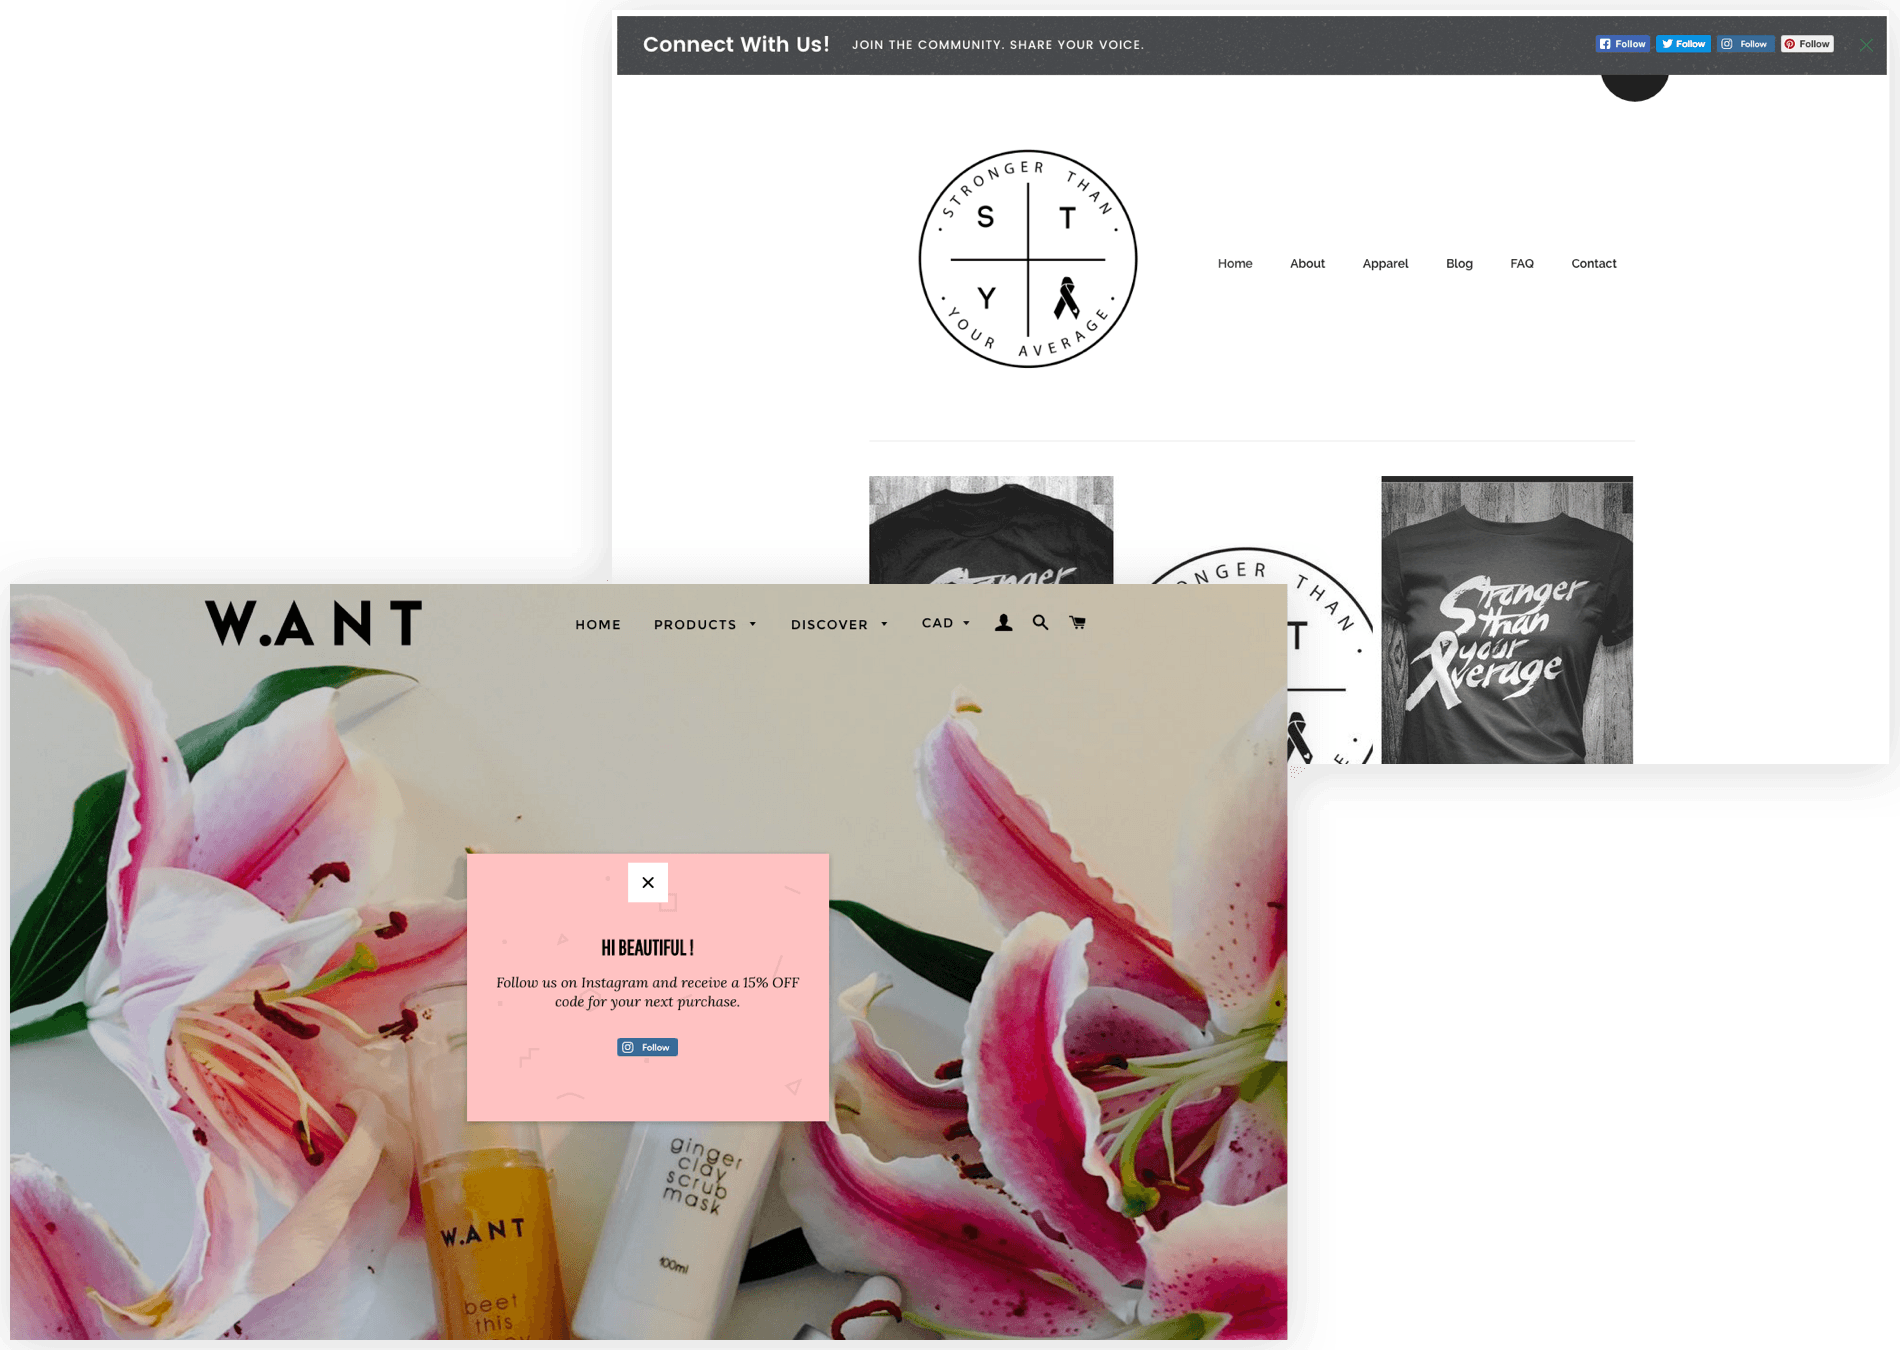 Increase social following popup on WANT skincare's website